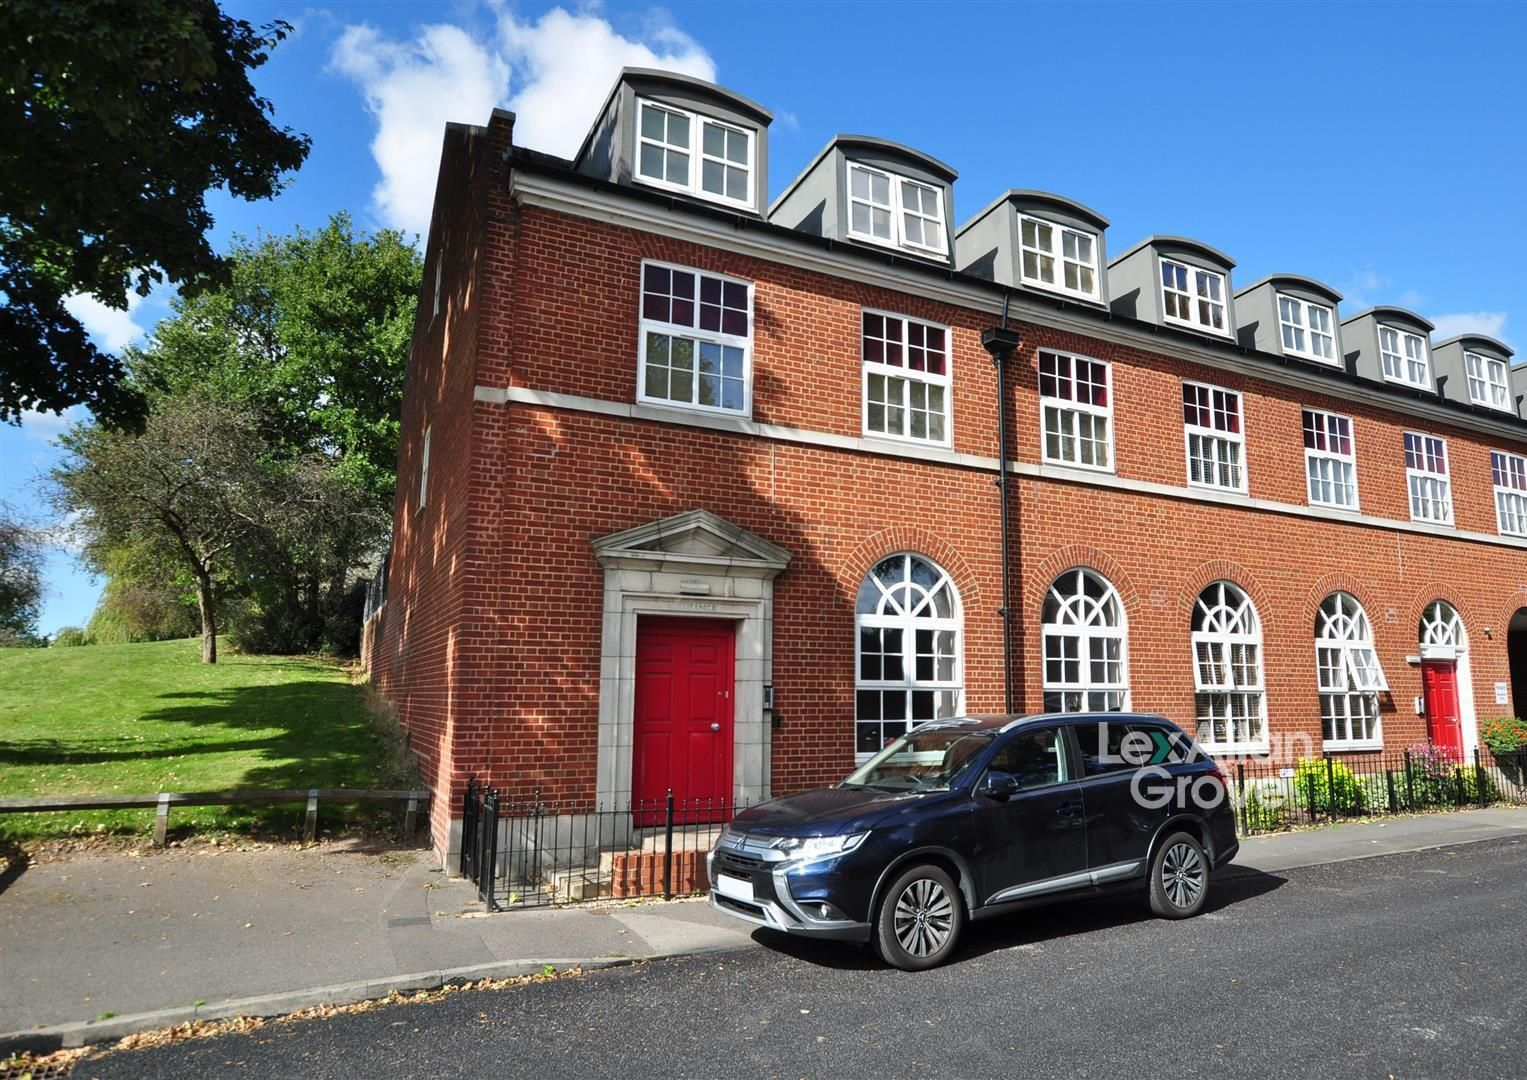 2 bed flat for sale, B64